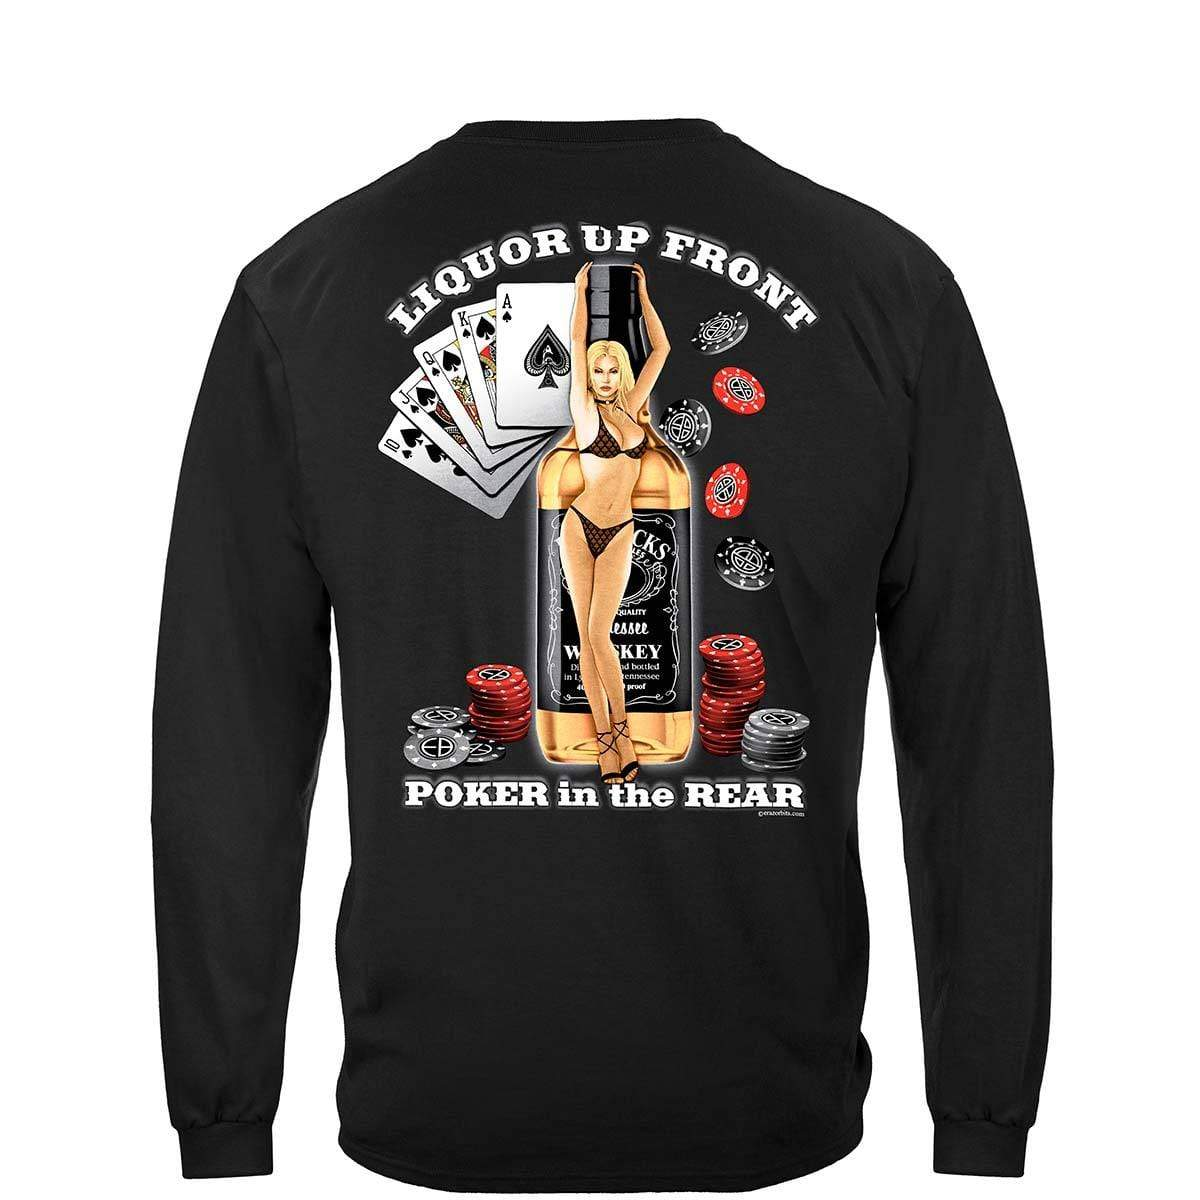 Liquor Up Front Premium T-Shirt